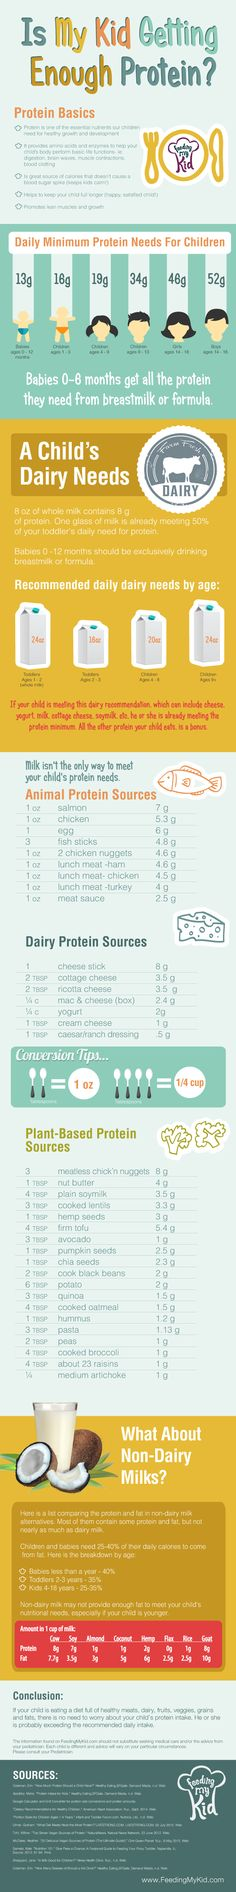 Is My Kid Getting Enough Protein INFOGRAPHIC from Feeding My Kid. How do you know if your child is getting enough protein? Children Nutrition